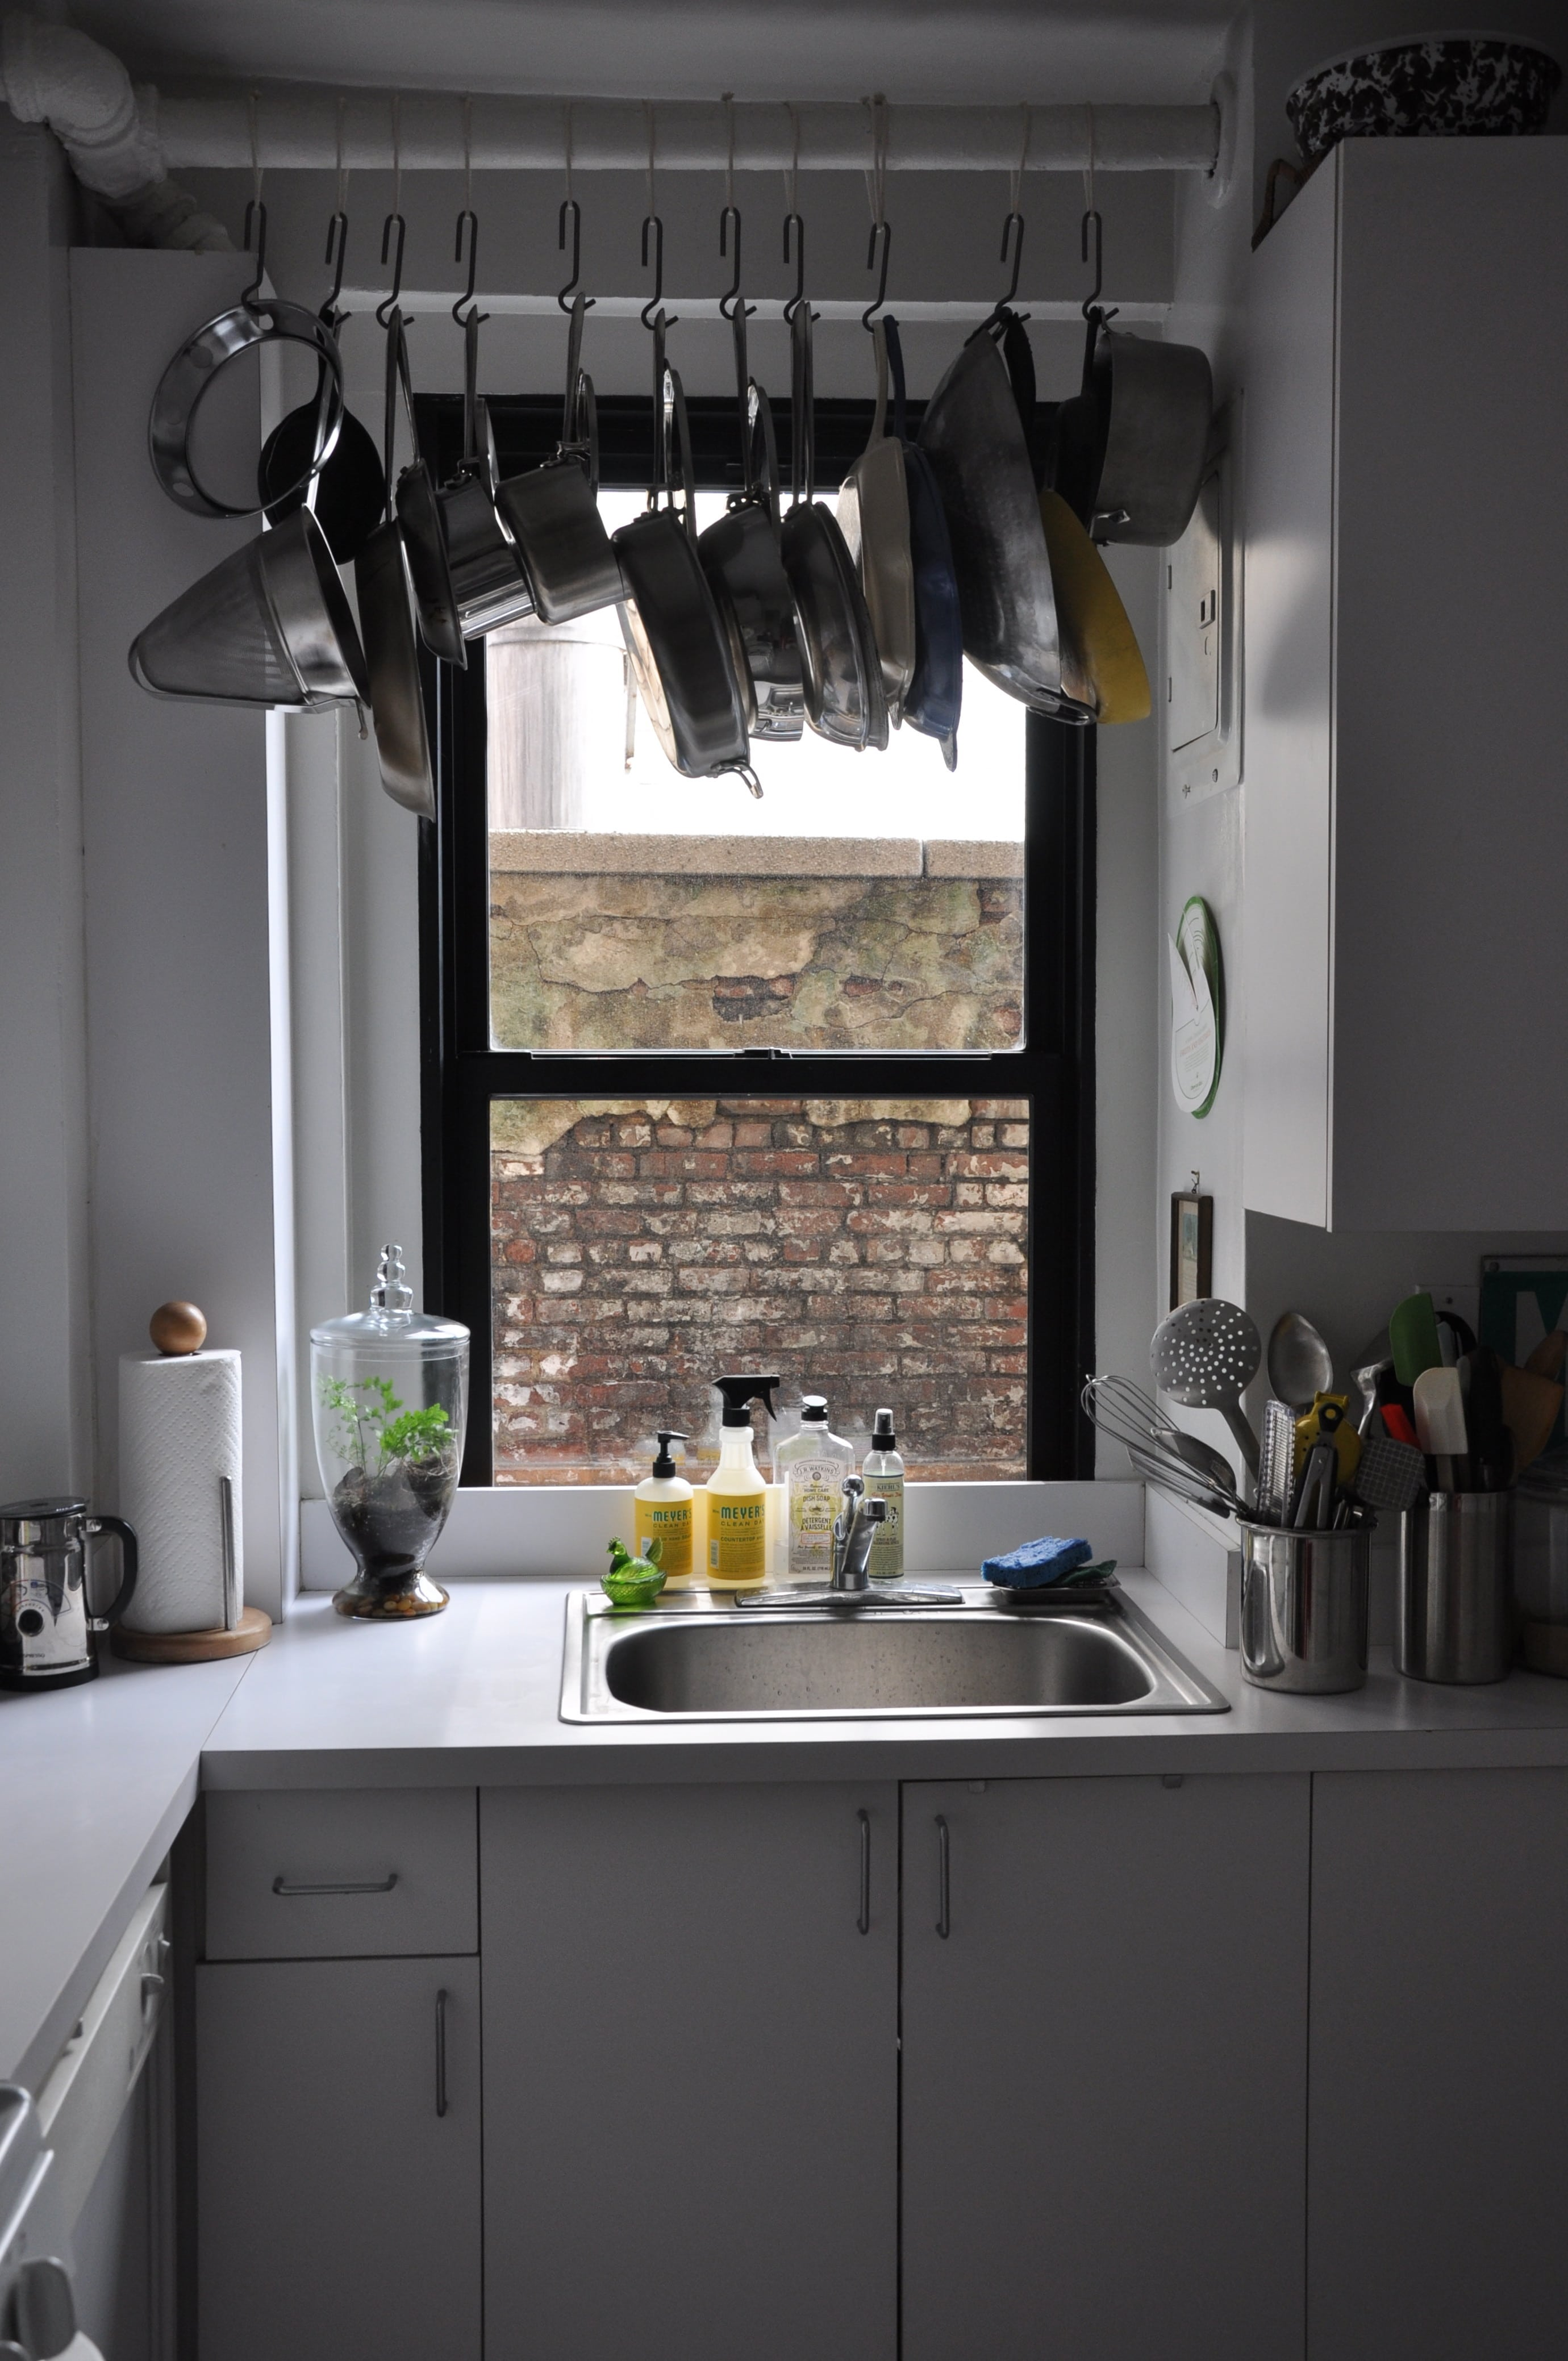 Hanging-pots-and-pans-creates-more-storage-space